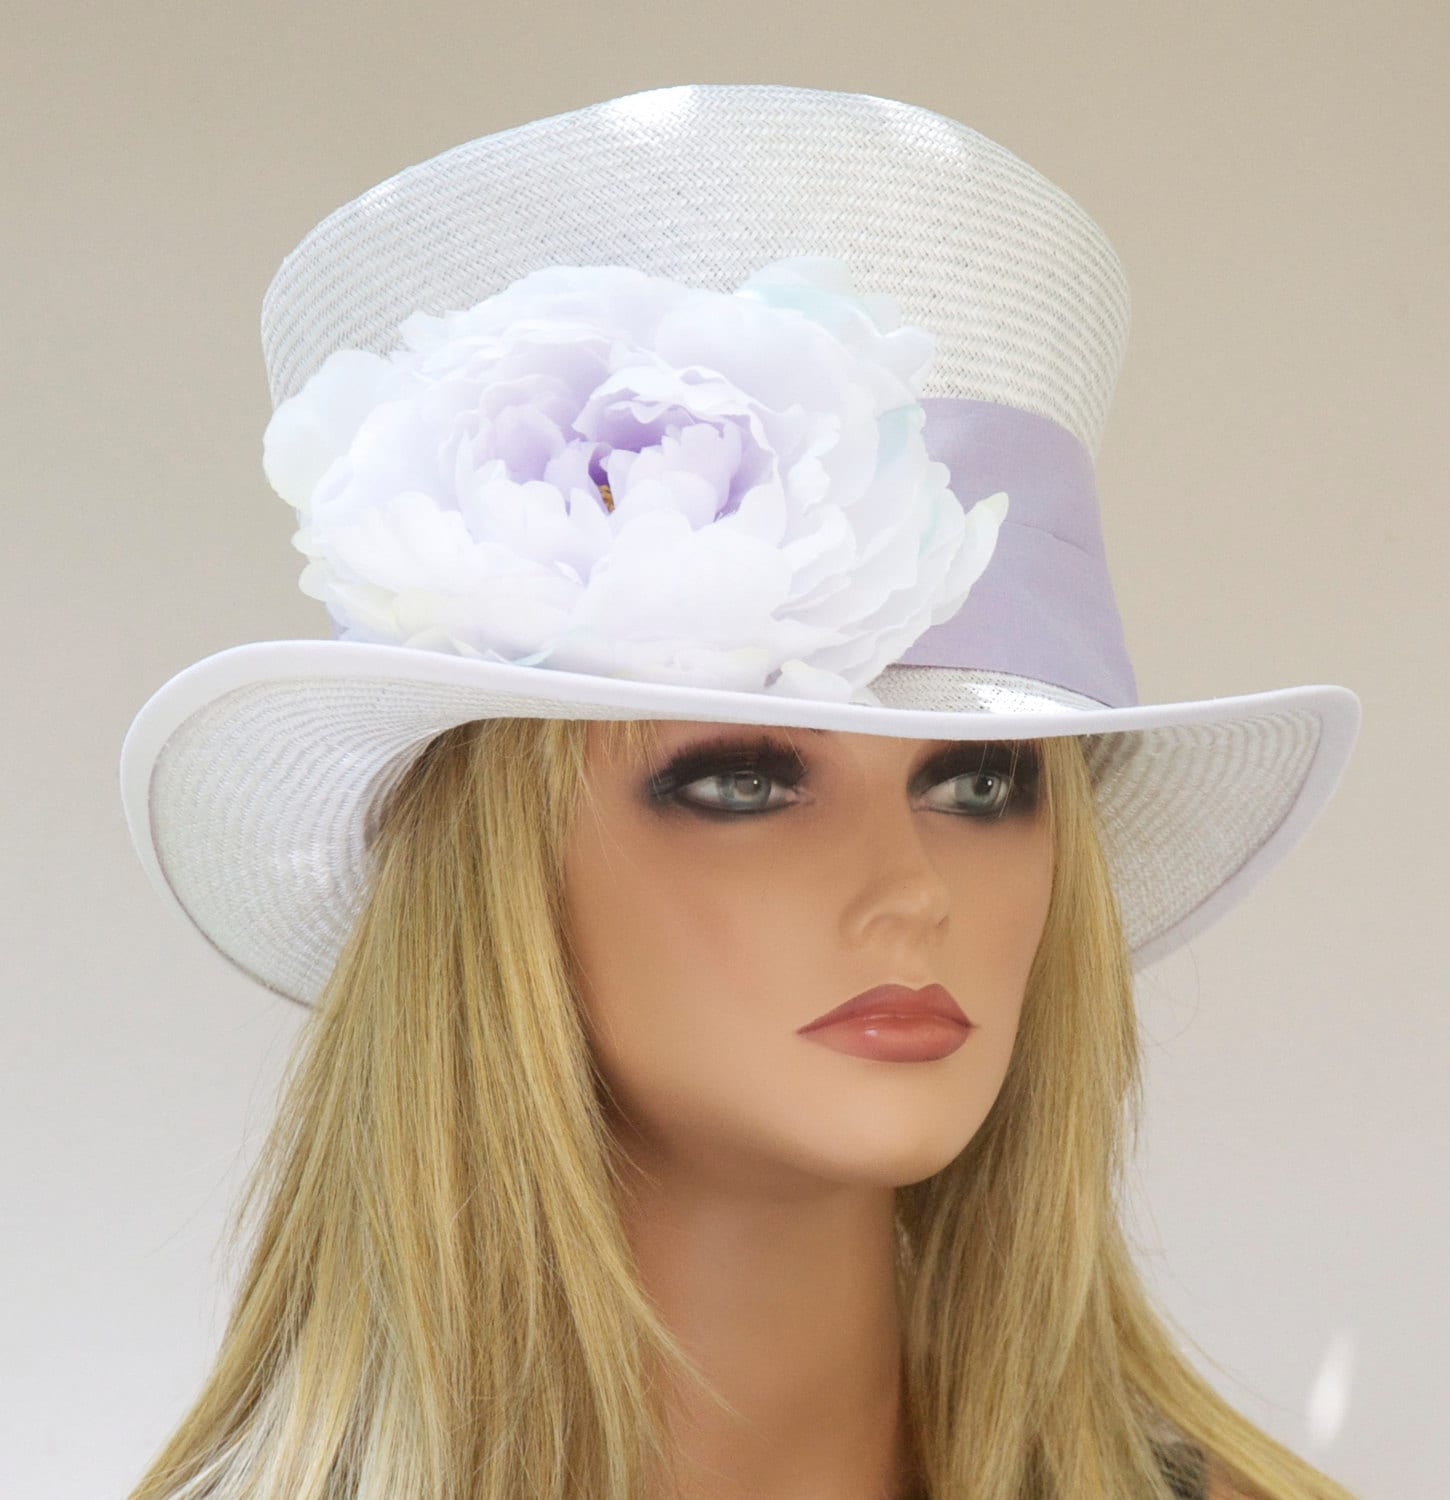 Shop for womens white hat online at Target. Free shipping on purchases over $35 and save 5% every day with your Target REDcard.